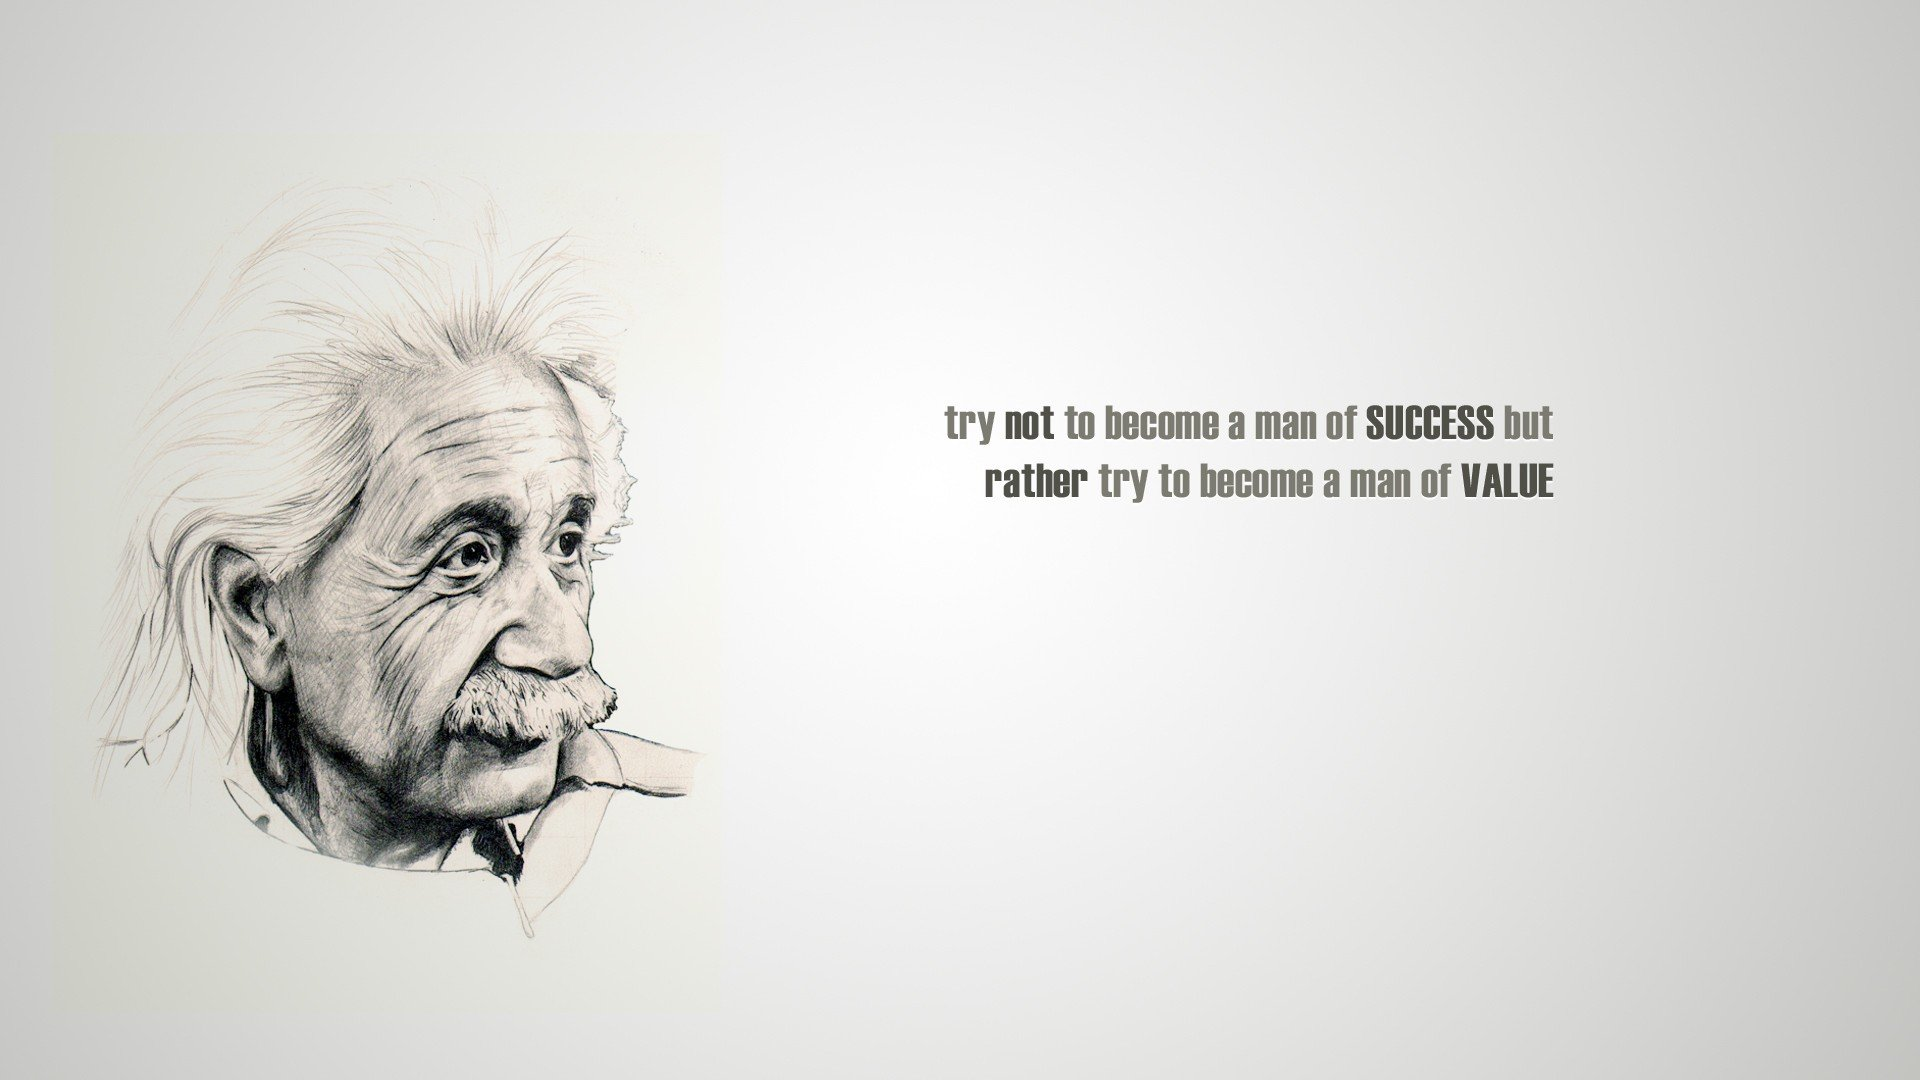 Success Wallpapers 1920x1080 Full Hd 1080p Desktop Backgrounds